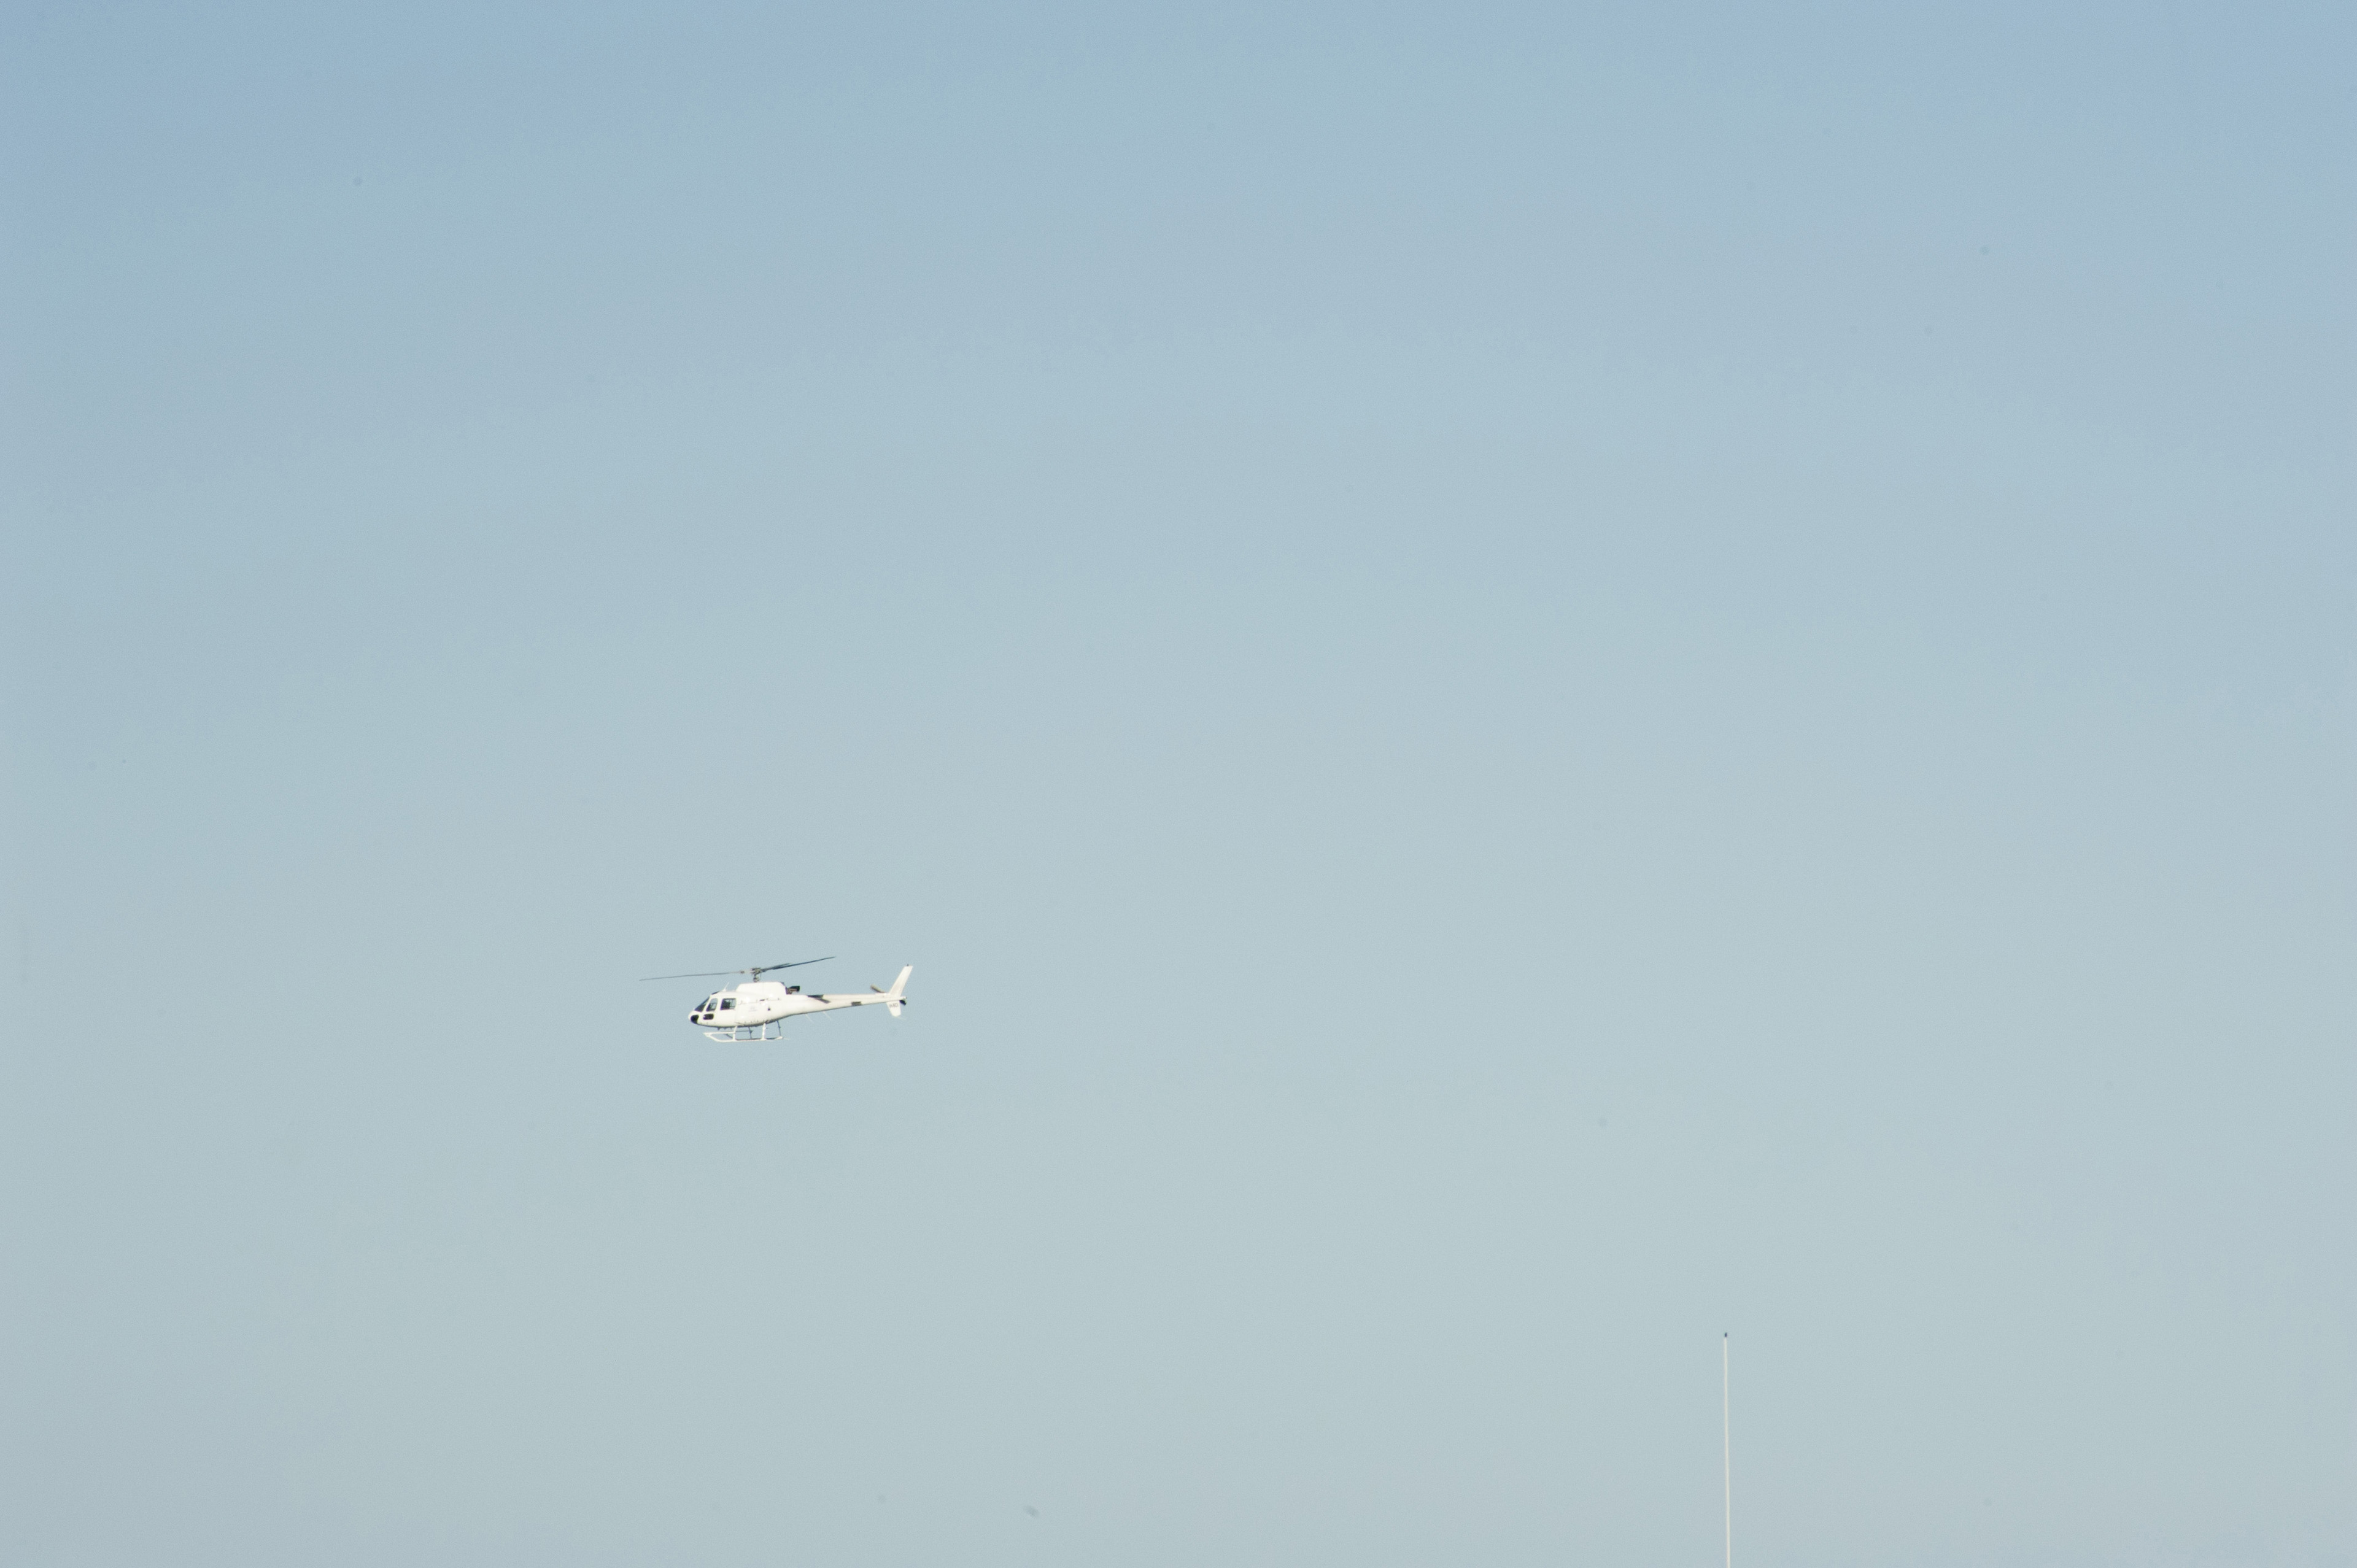 Side View of Helicopter Flying in Big Clear Blue Sky with Copyspace